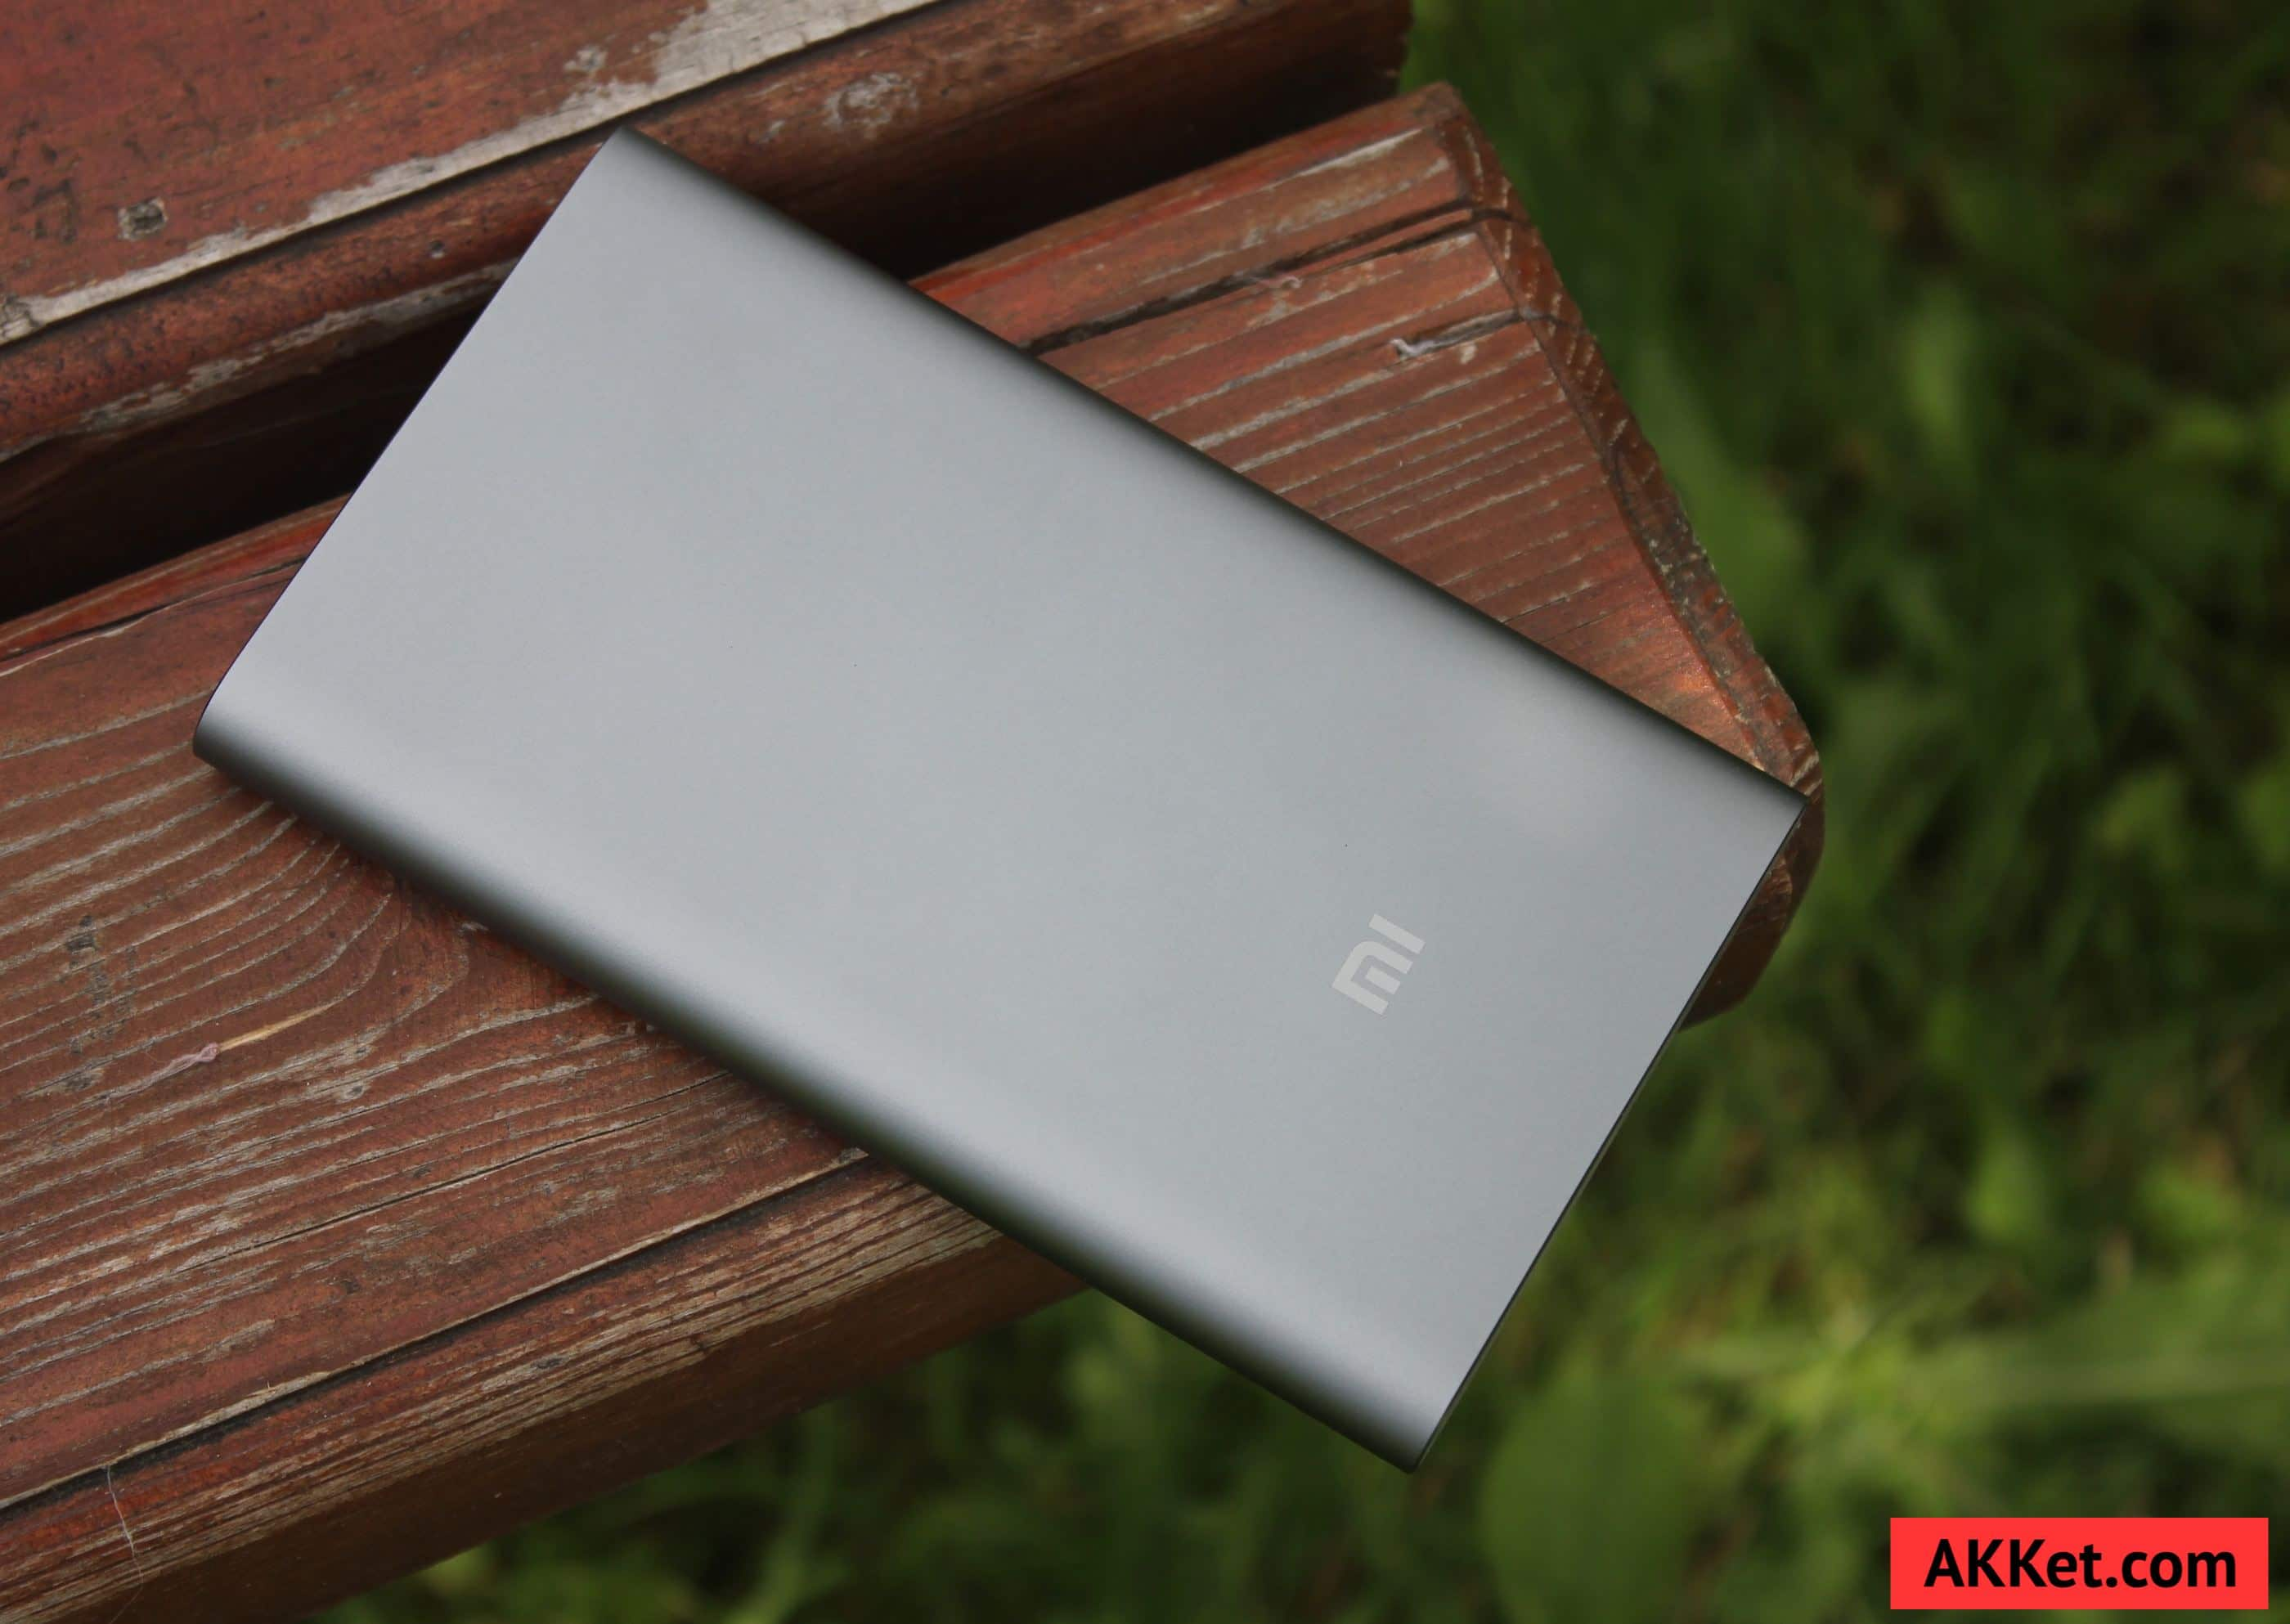 Xiaomi Mi Power Bank Pro 10000 мАч review photo 8